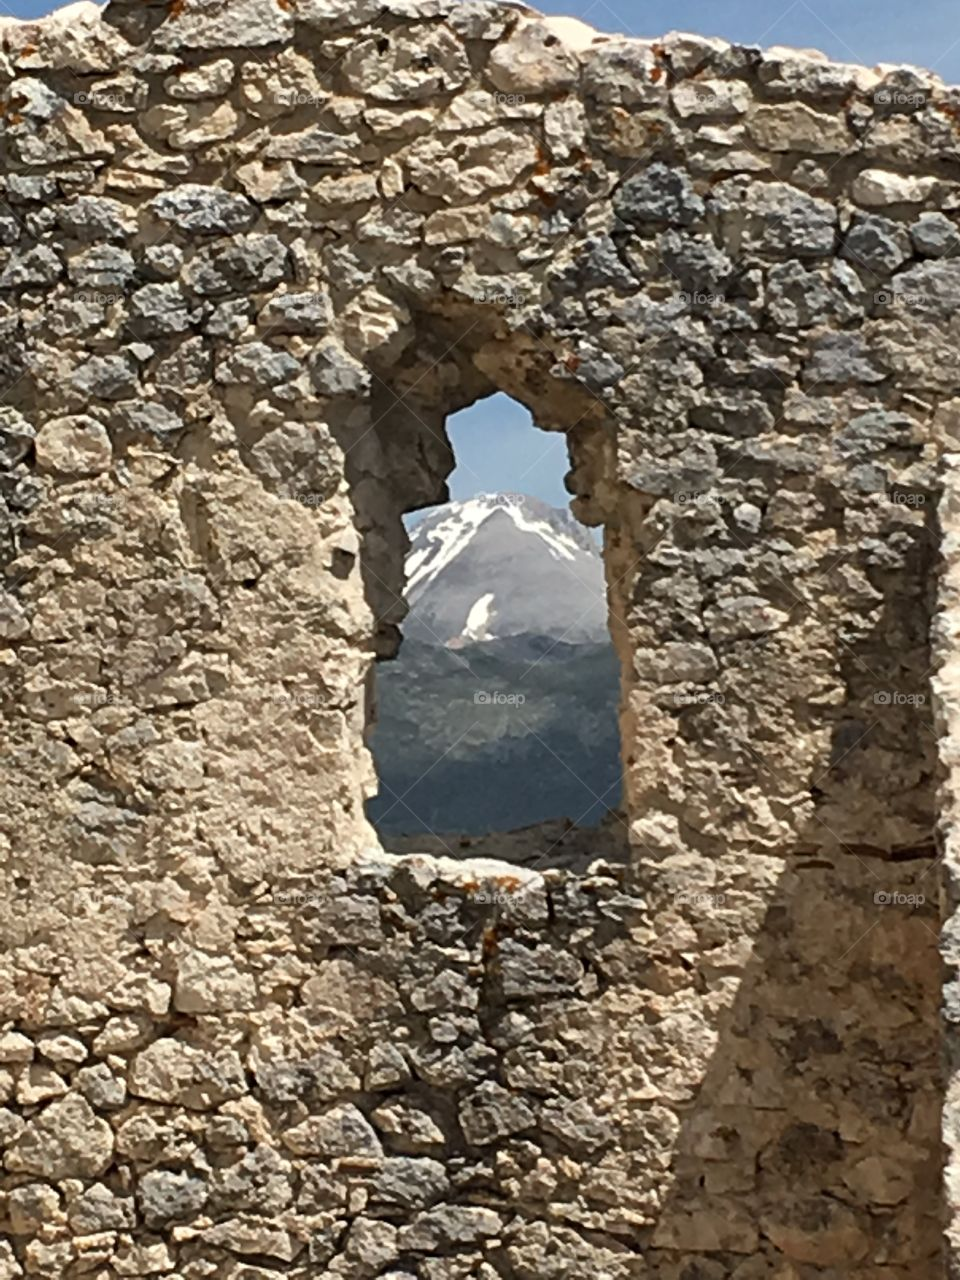 View through a window of the mountains